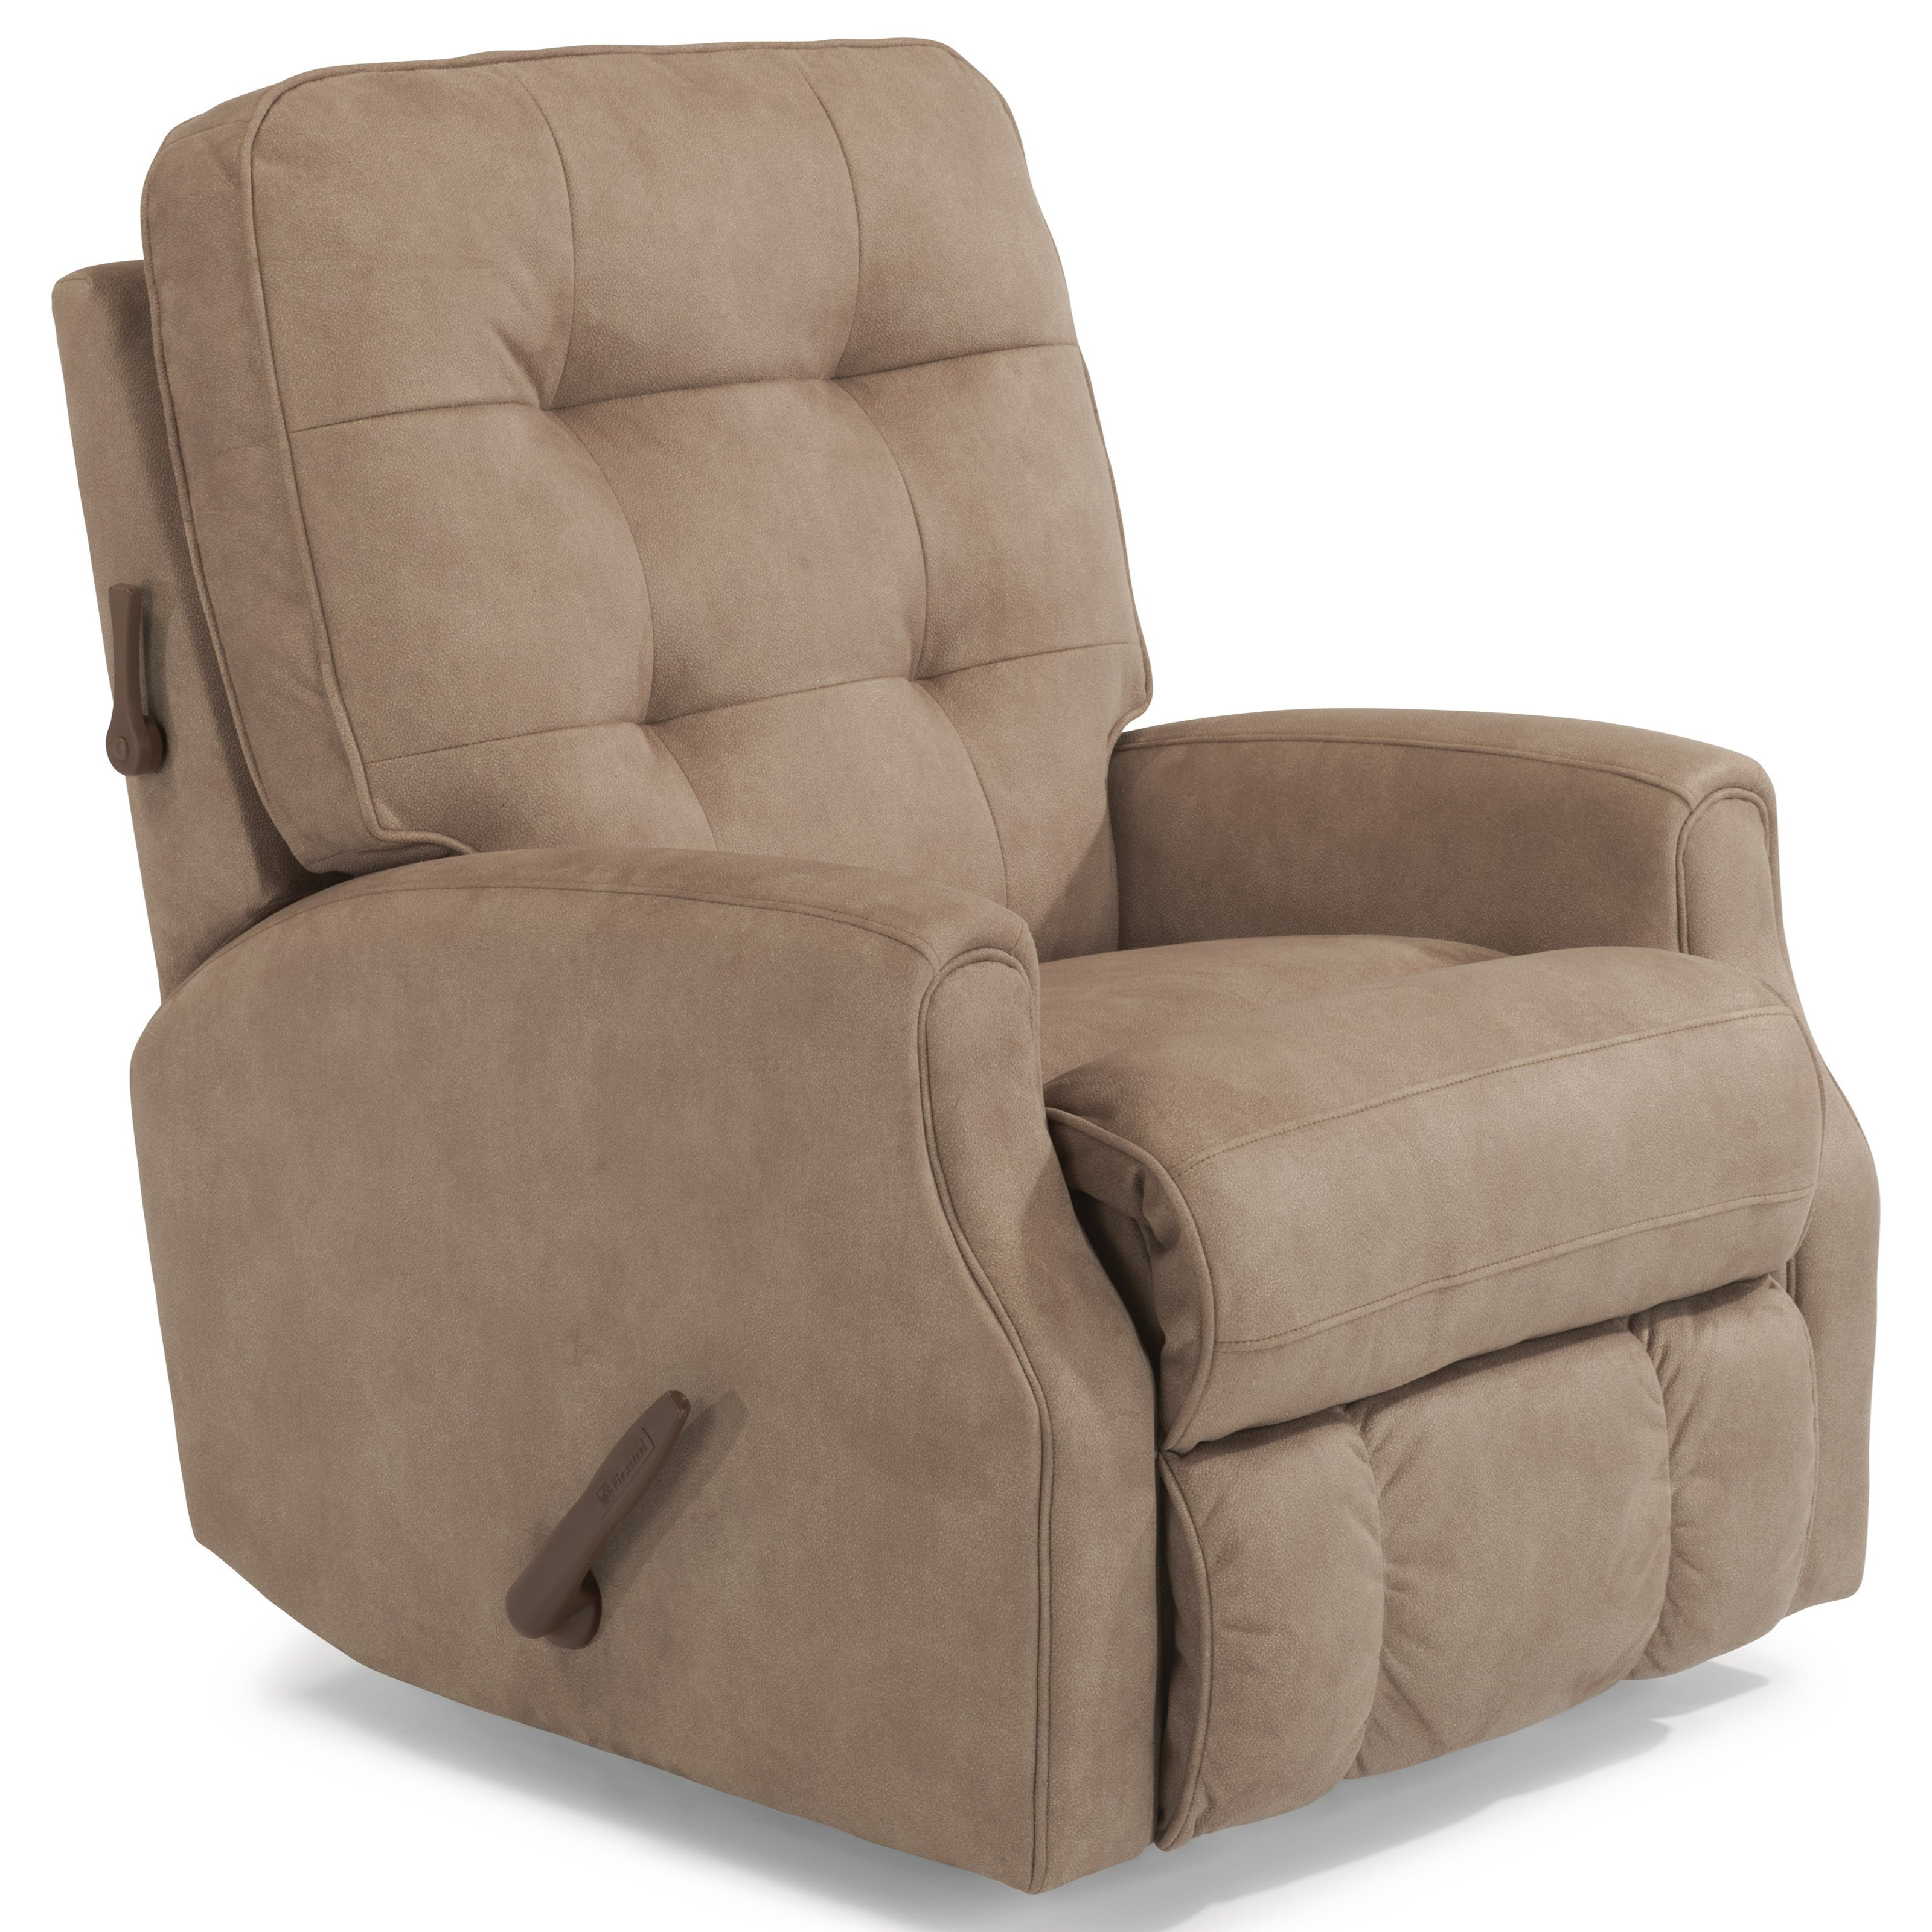 Devon Swivel Glider Recliner by Flexsteel at Jordan's Home Furnishings